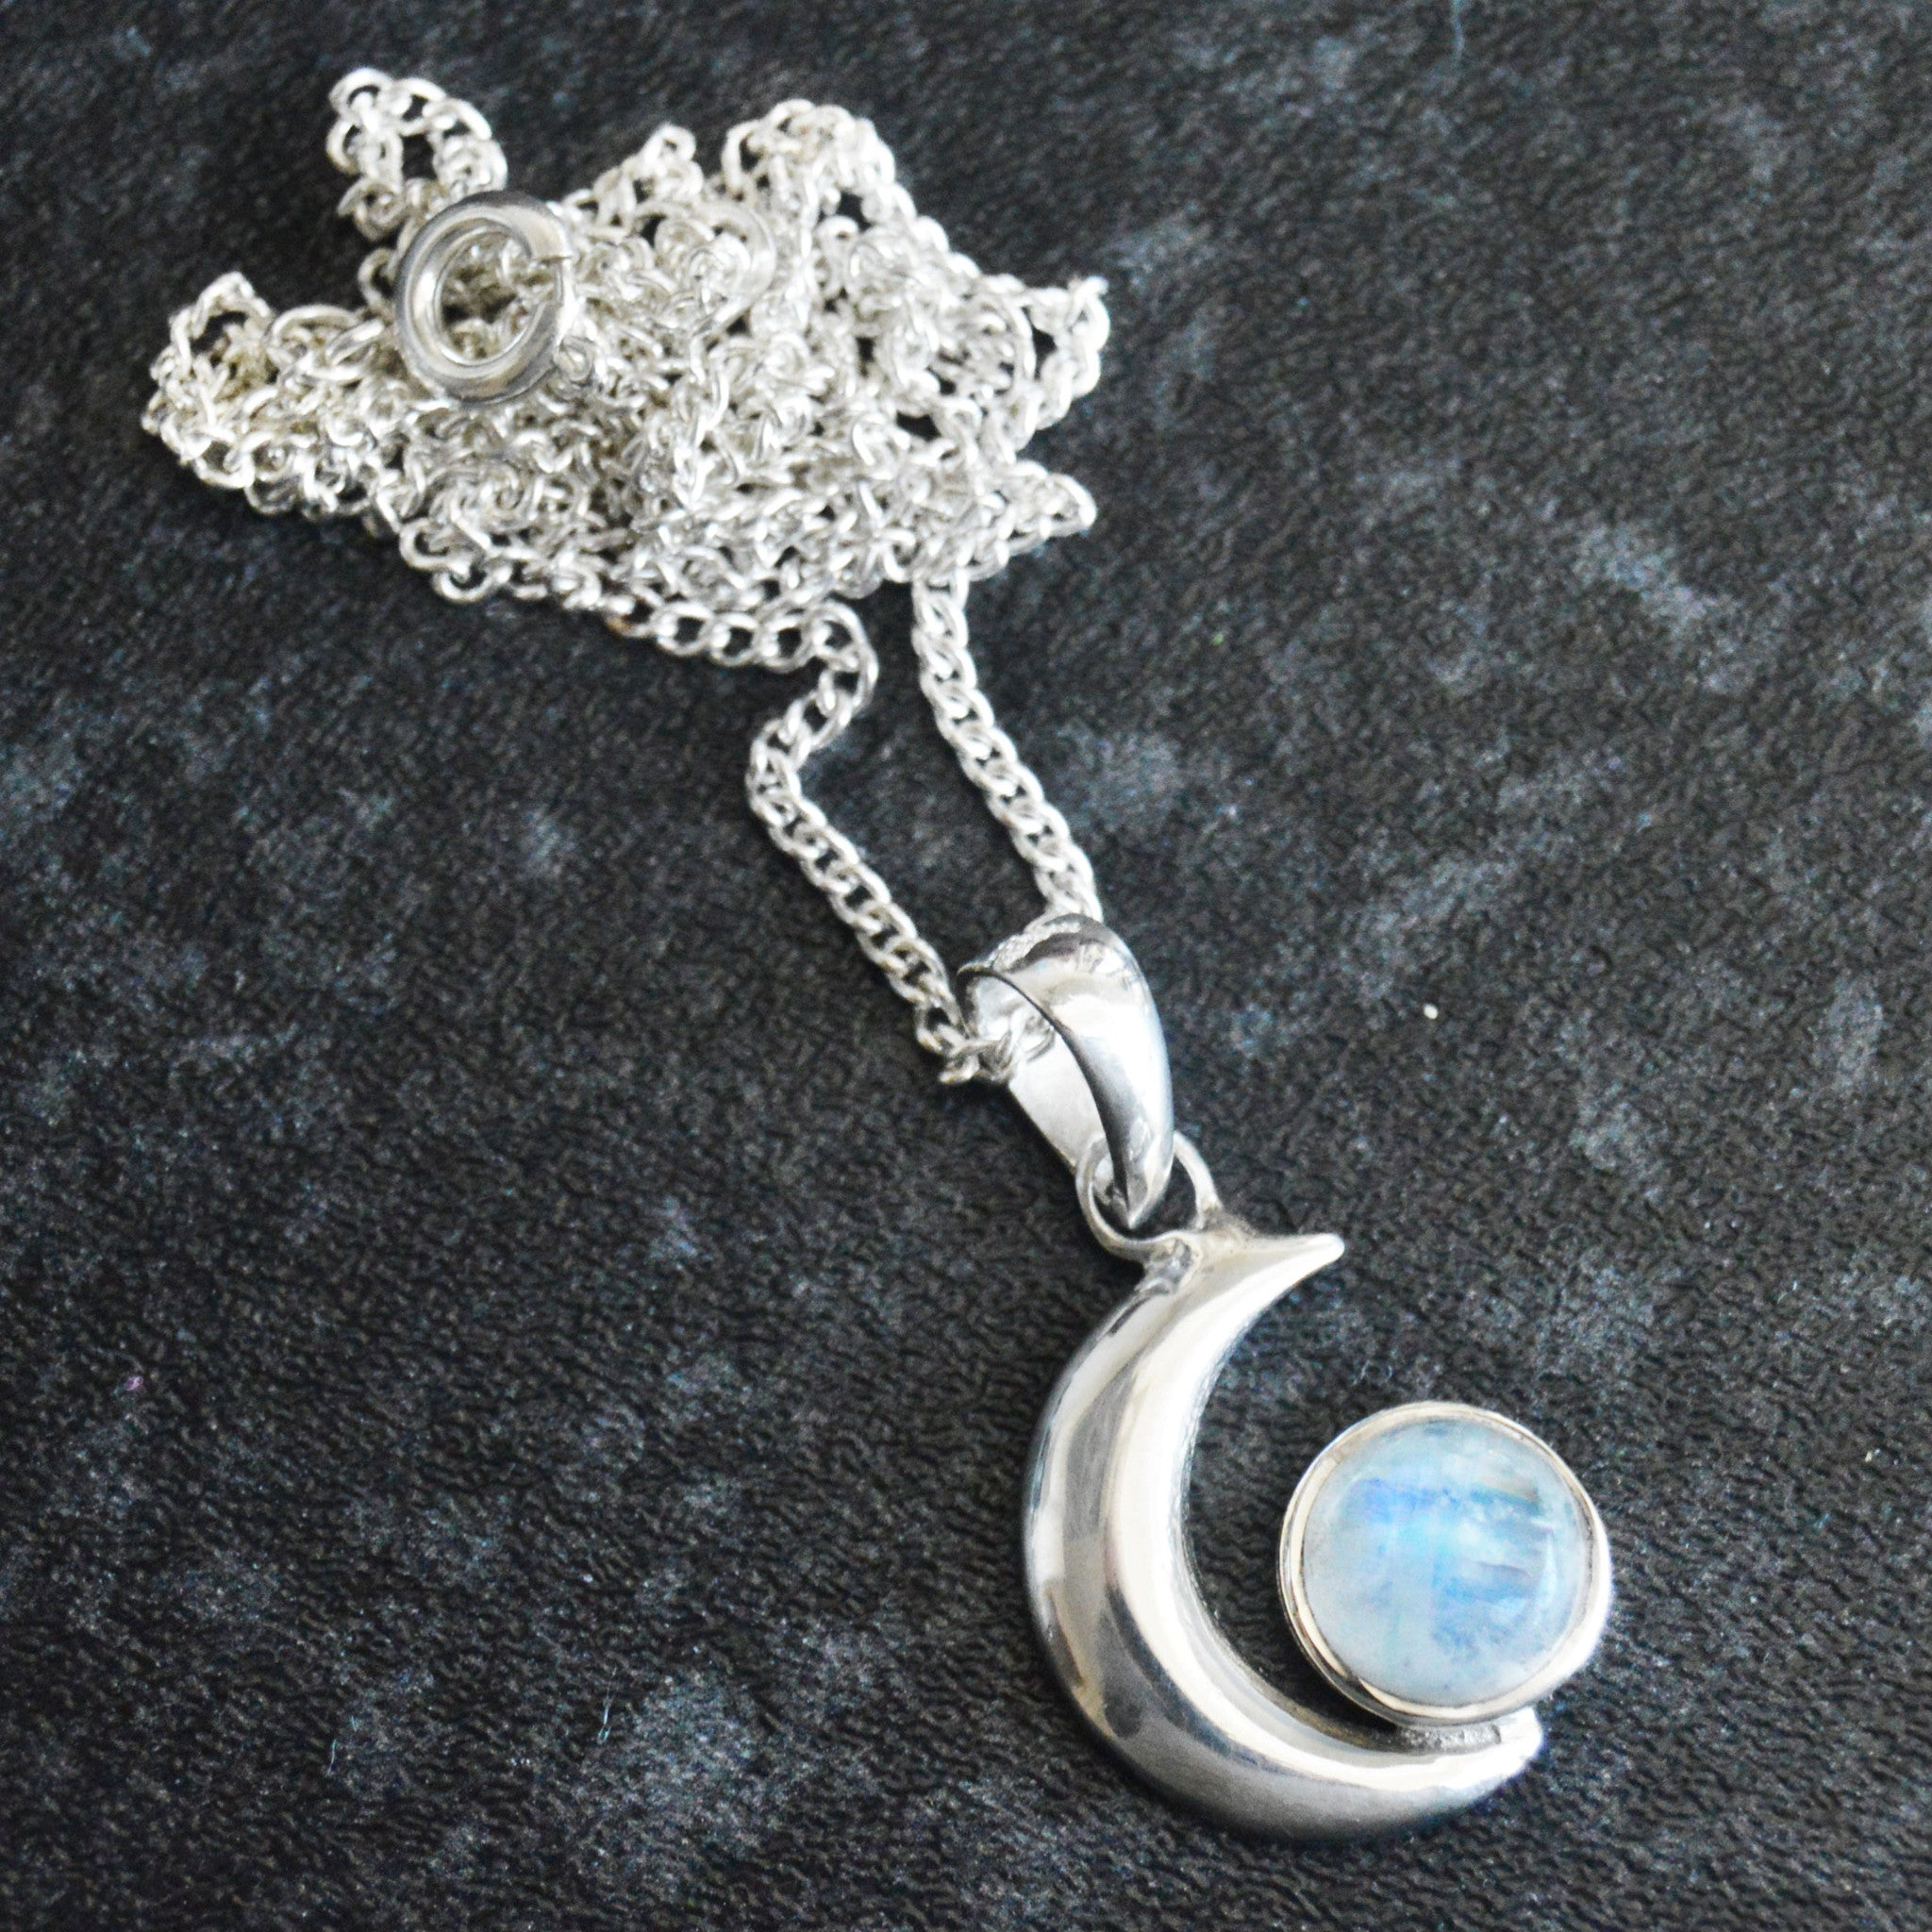 STERLING SILVER RAINBOW MOONSTONE CRESCENT MOON NECKLACE